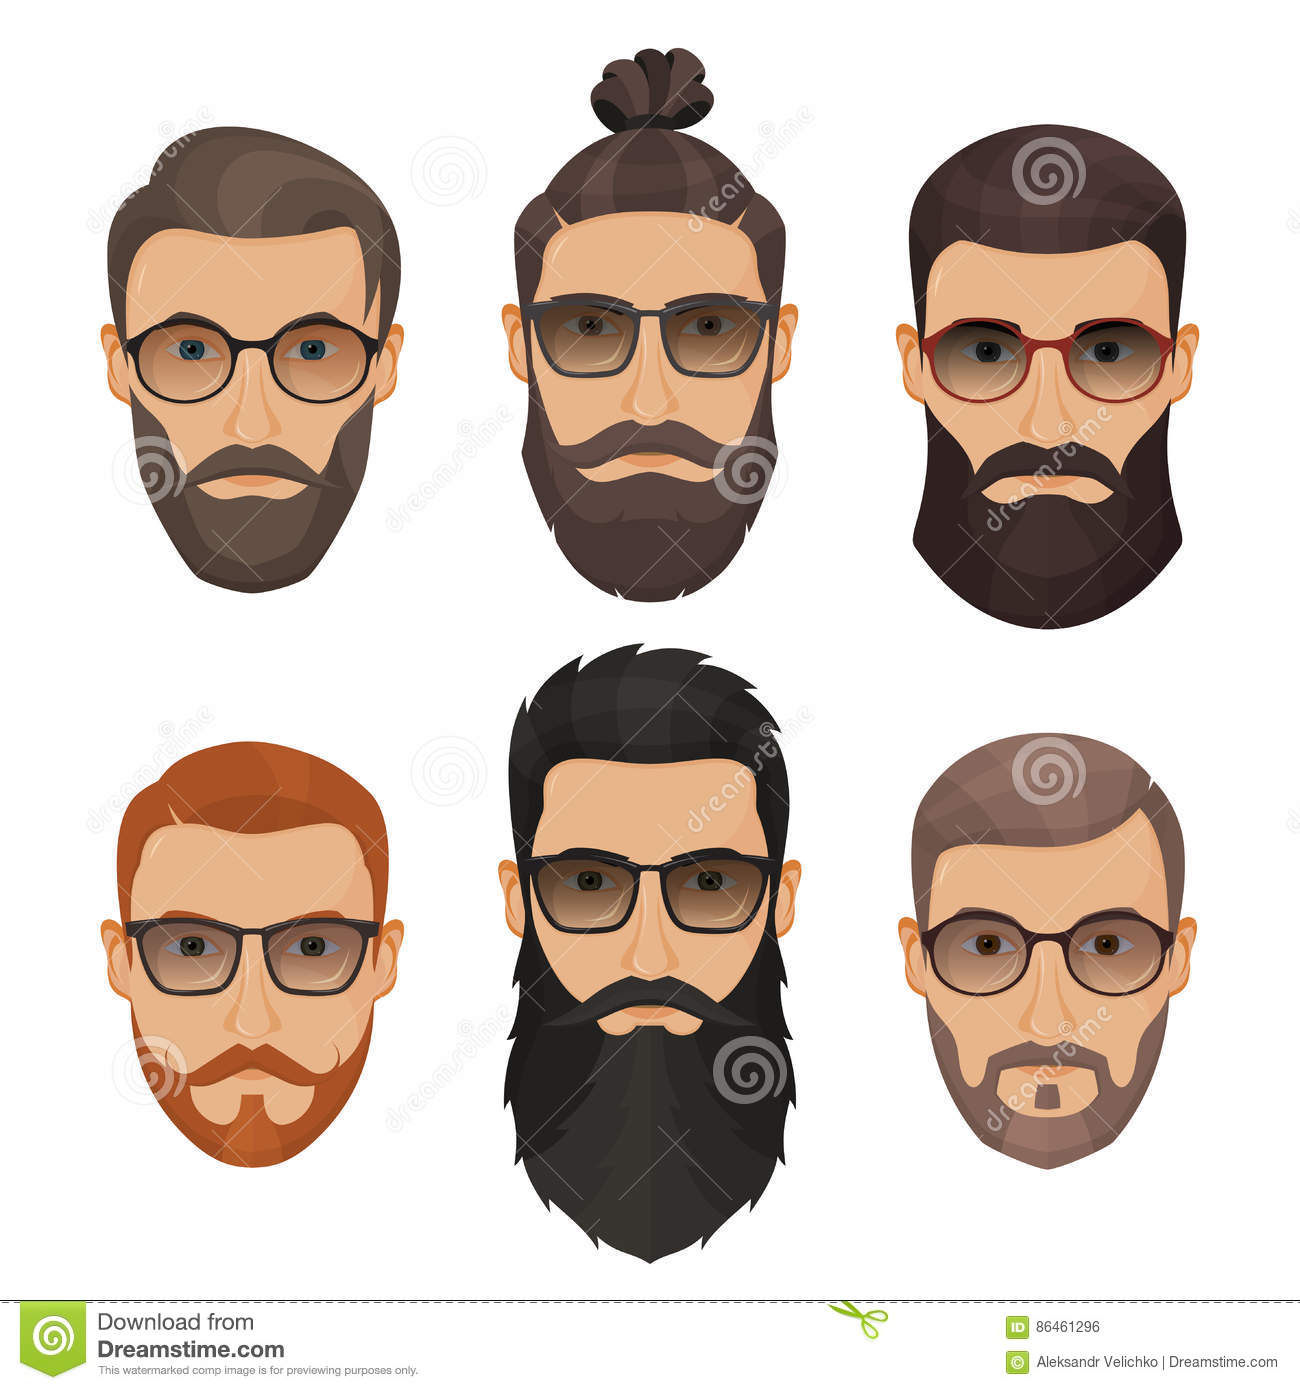 hommes barbus de hippies avec diff rentes barbes de moustaches de coiffures illustration de. Black Bedroom Furniture Sets. Home Design Ideas